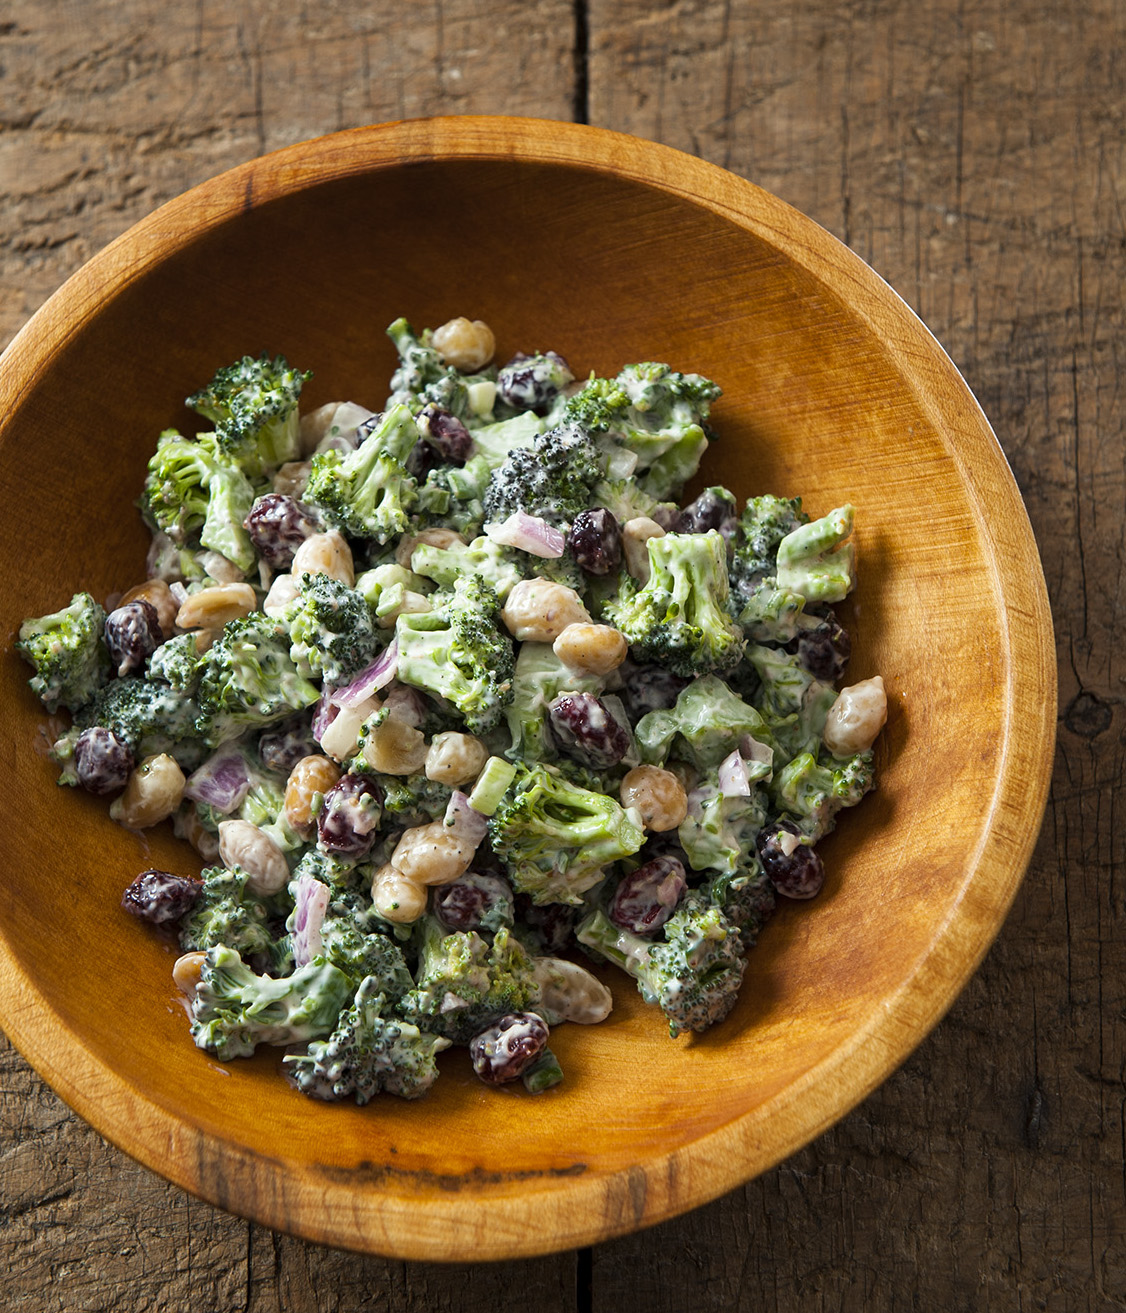 Beth Dooley's easy to make broccoli salad recipe // Photo by Mette Nielsen